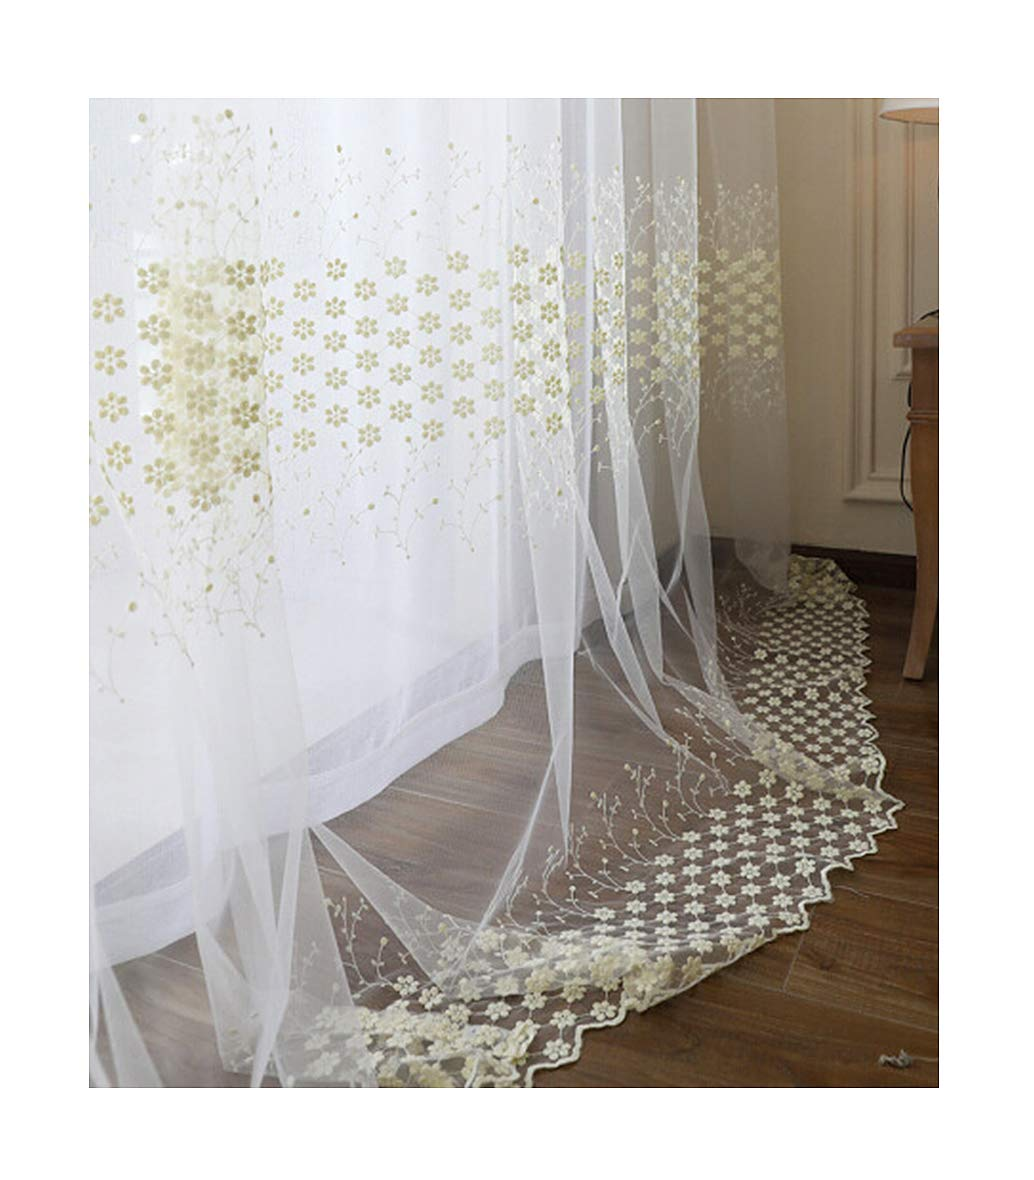 ASide BSide Sheer Curtains Floral Lozenge Lace Nature Style Rod Pocket Top Transparent Window Decoration For Children Room Sitting Room and Houseroom (1 Panel, W 52 x L 95 inch, White)